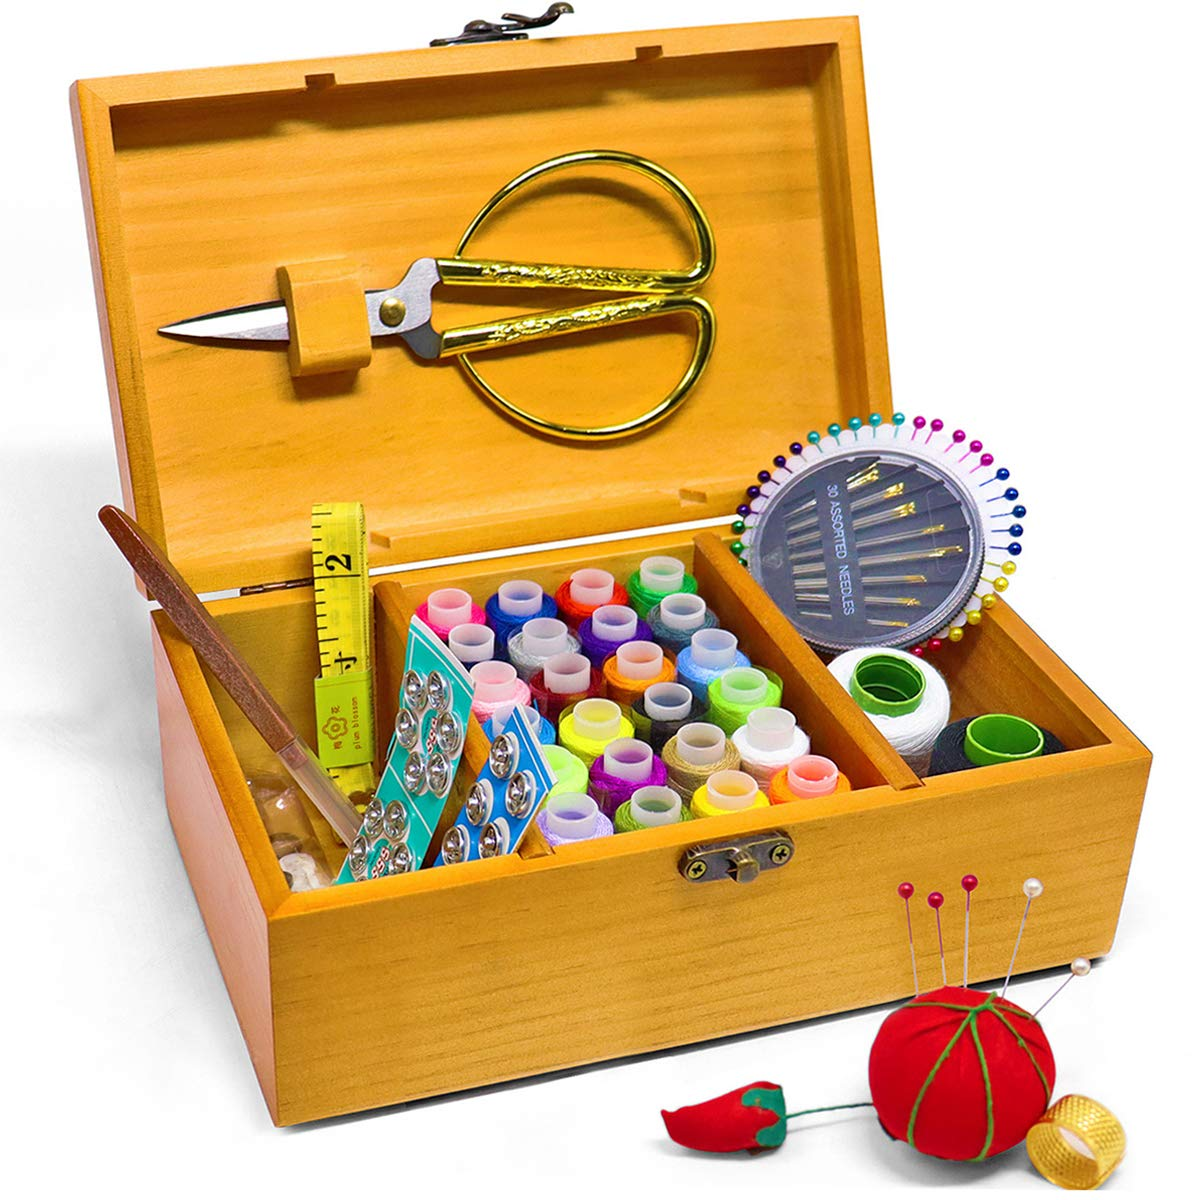 Jolitac Sewing Kit Box Wooden Sewing Basket Home Repair Tool Set with Needle, Scissors and Thread Art Craft Supplies